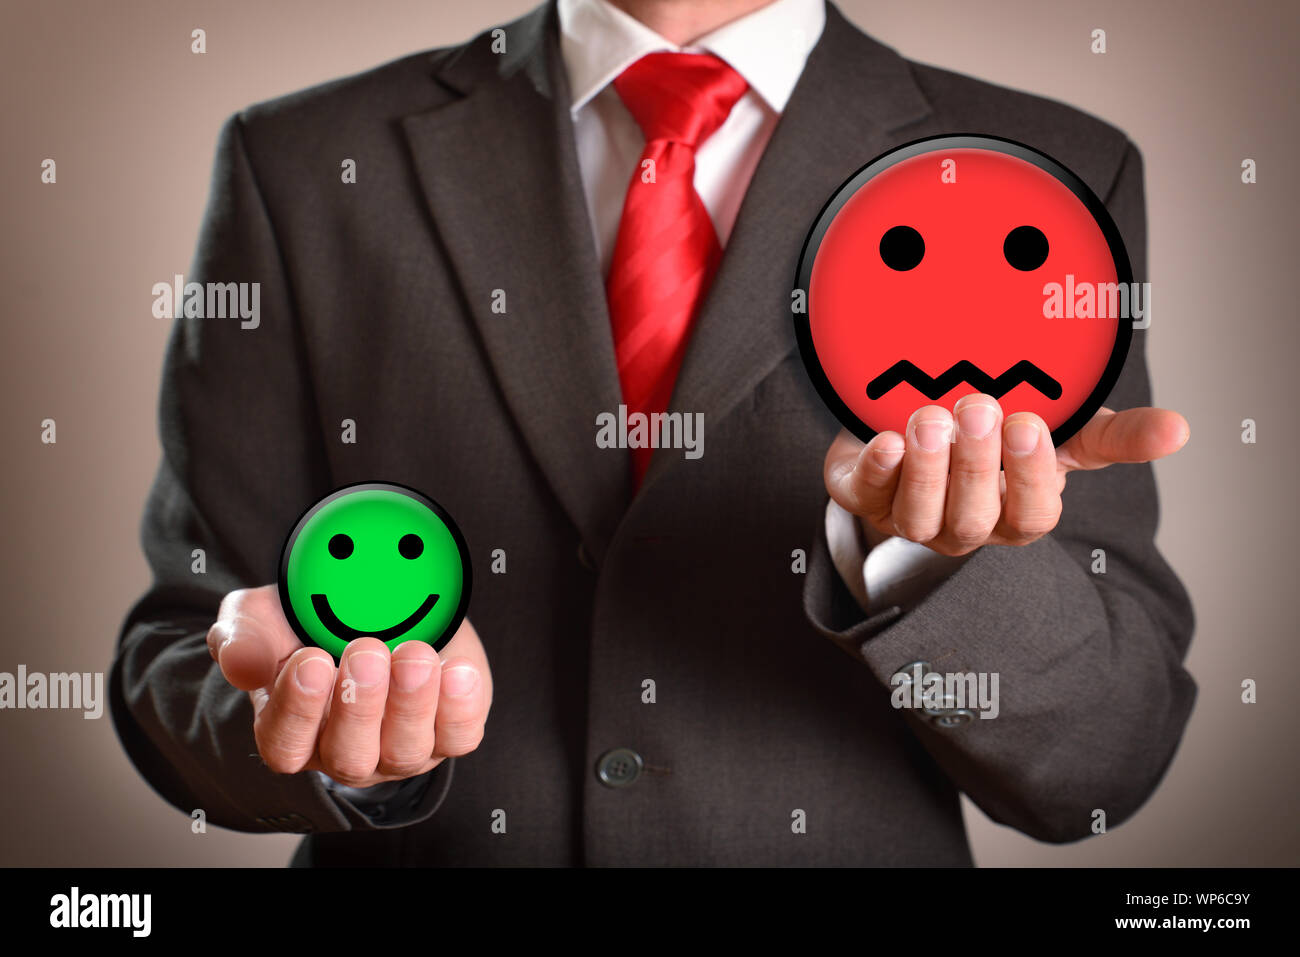 Businessman with emoticons in his hands representing failure. Horizontal composition. Front view. Stock Photo